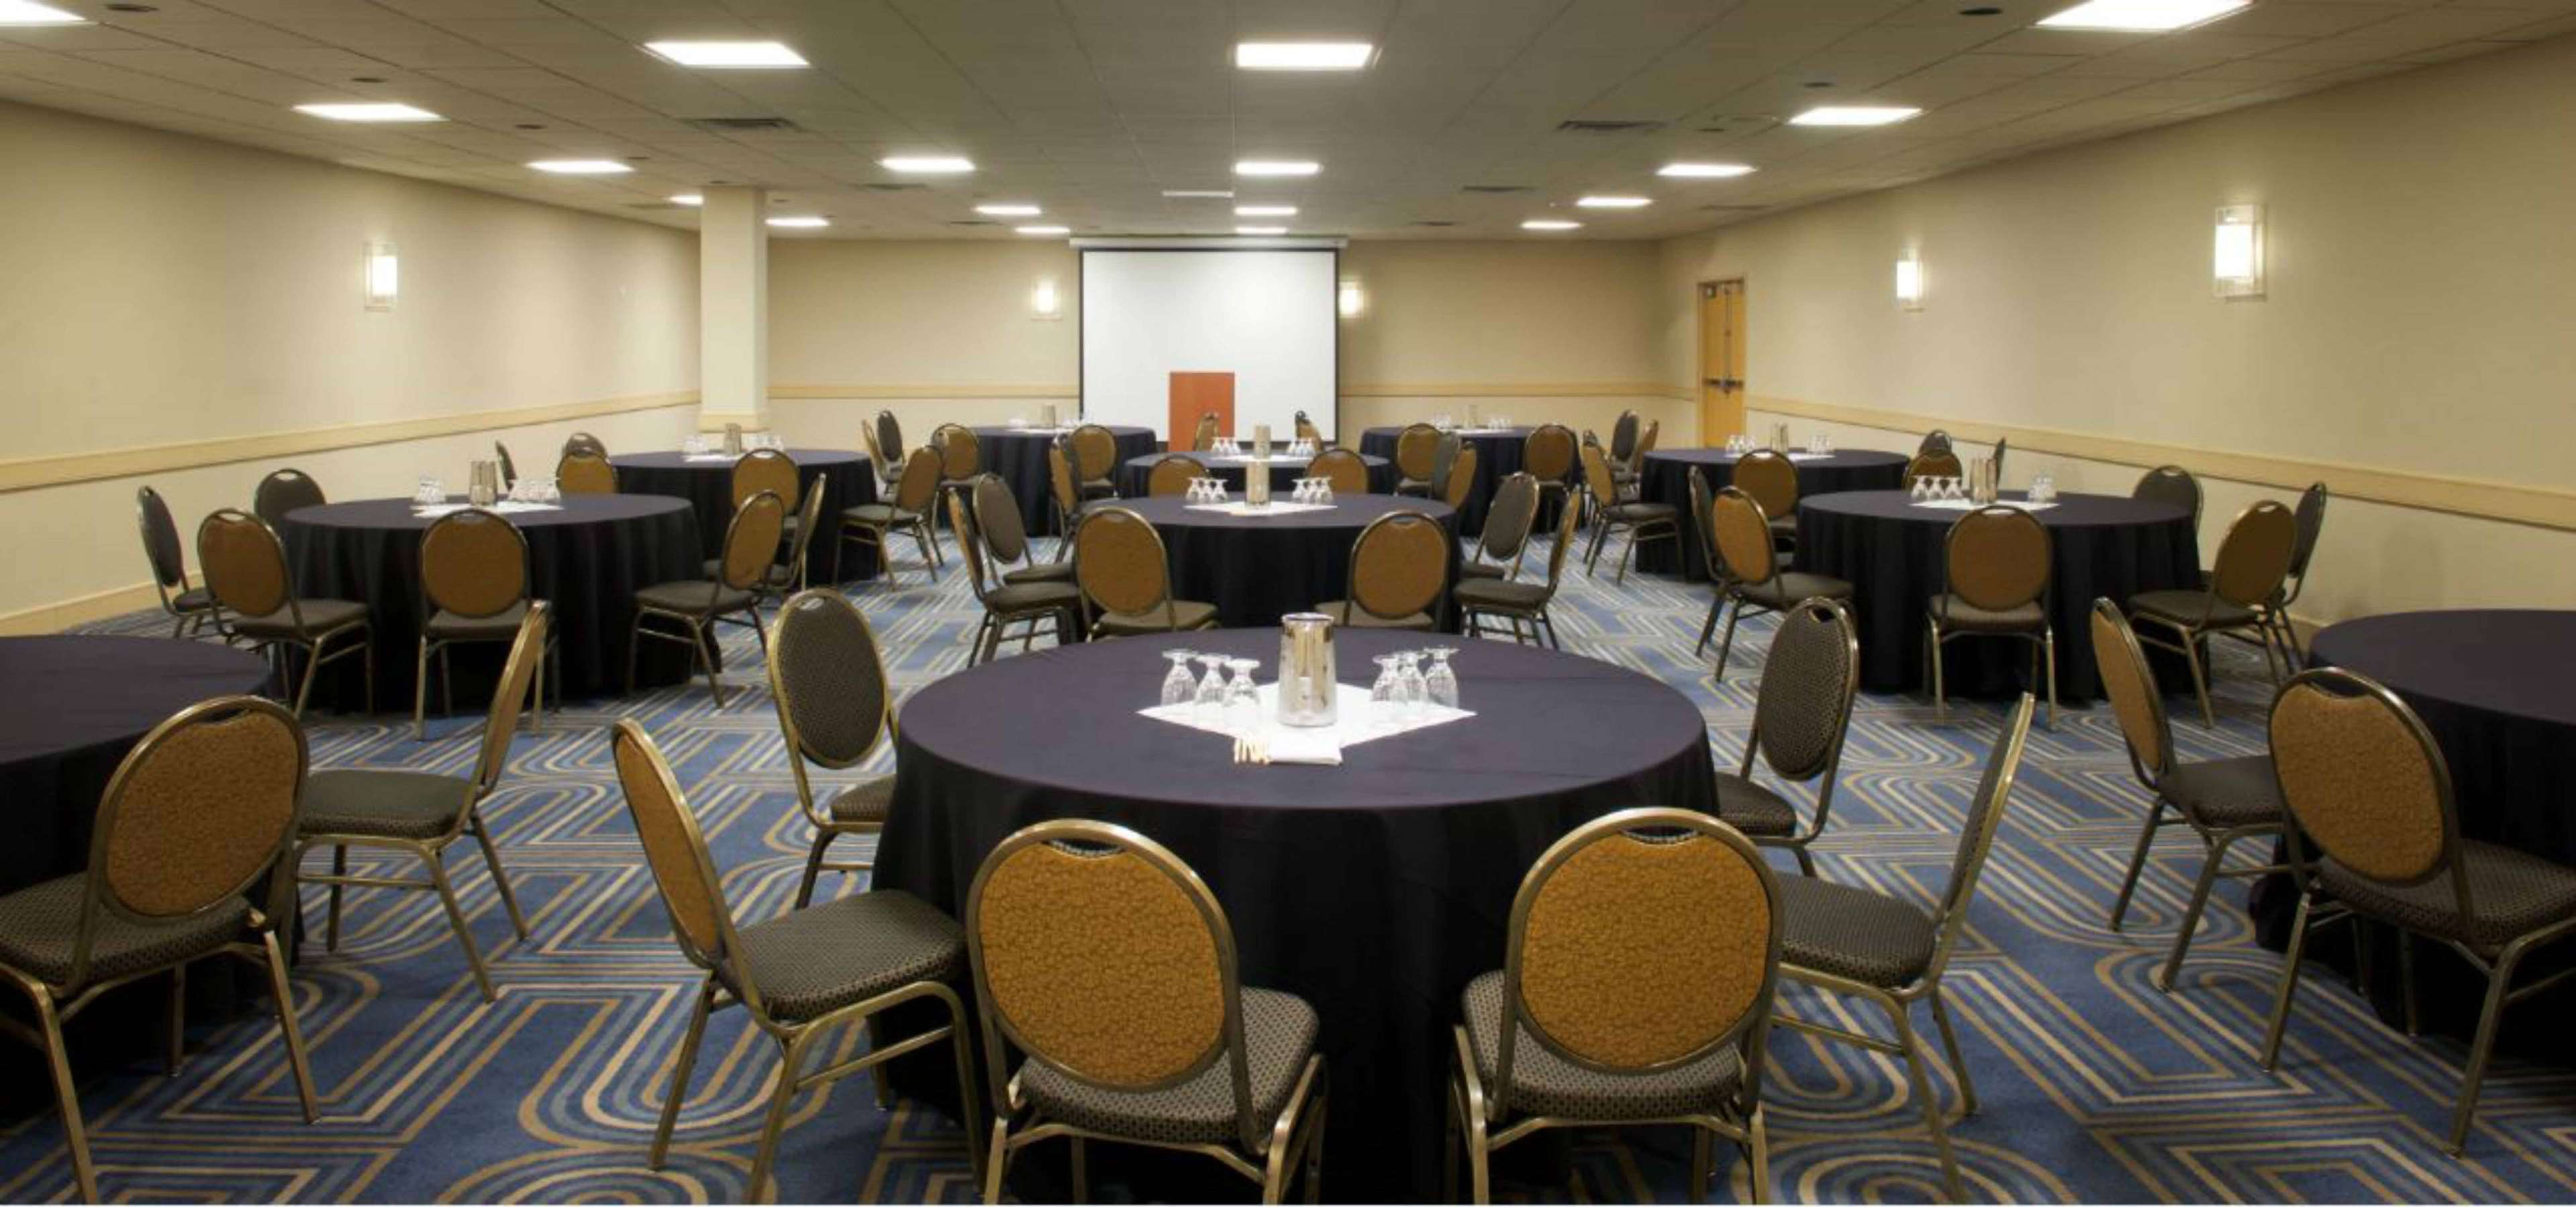 DoubleTree by Hilton Hotel Bloomington - Minneapolis South image 26